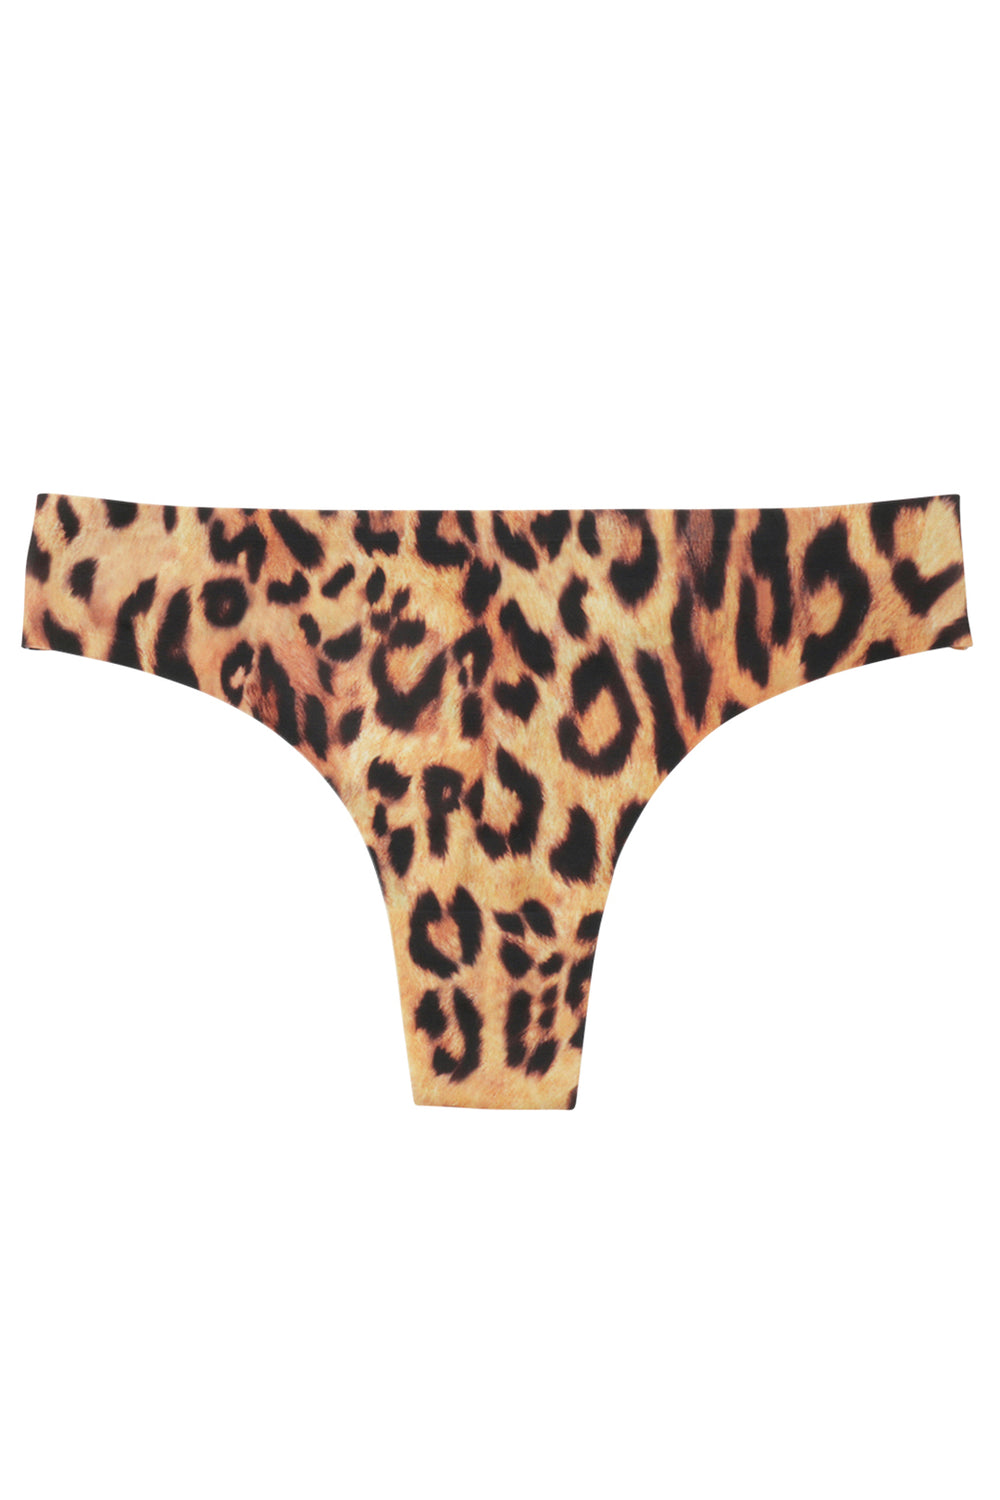 Leopard print low rise thong panty, eco-friendly machine washable